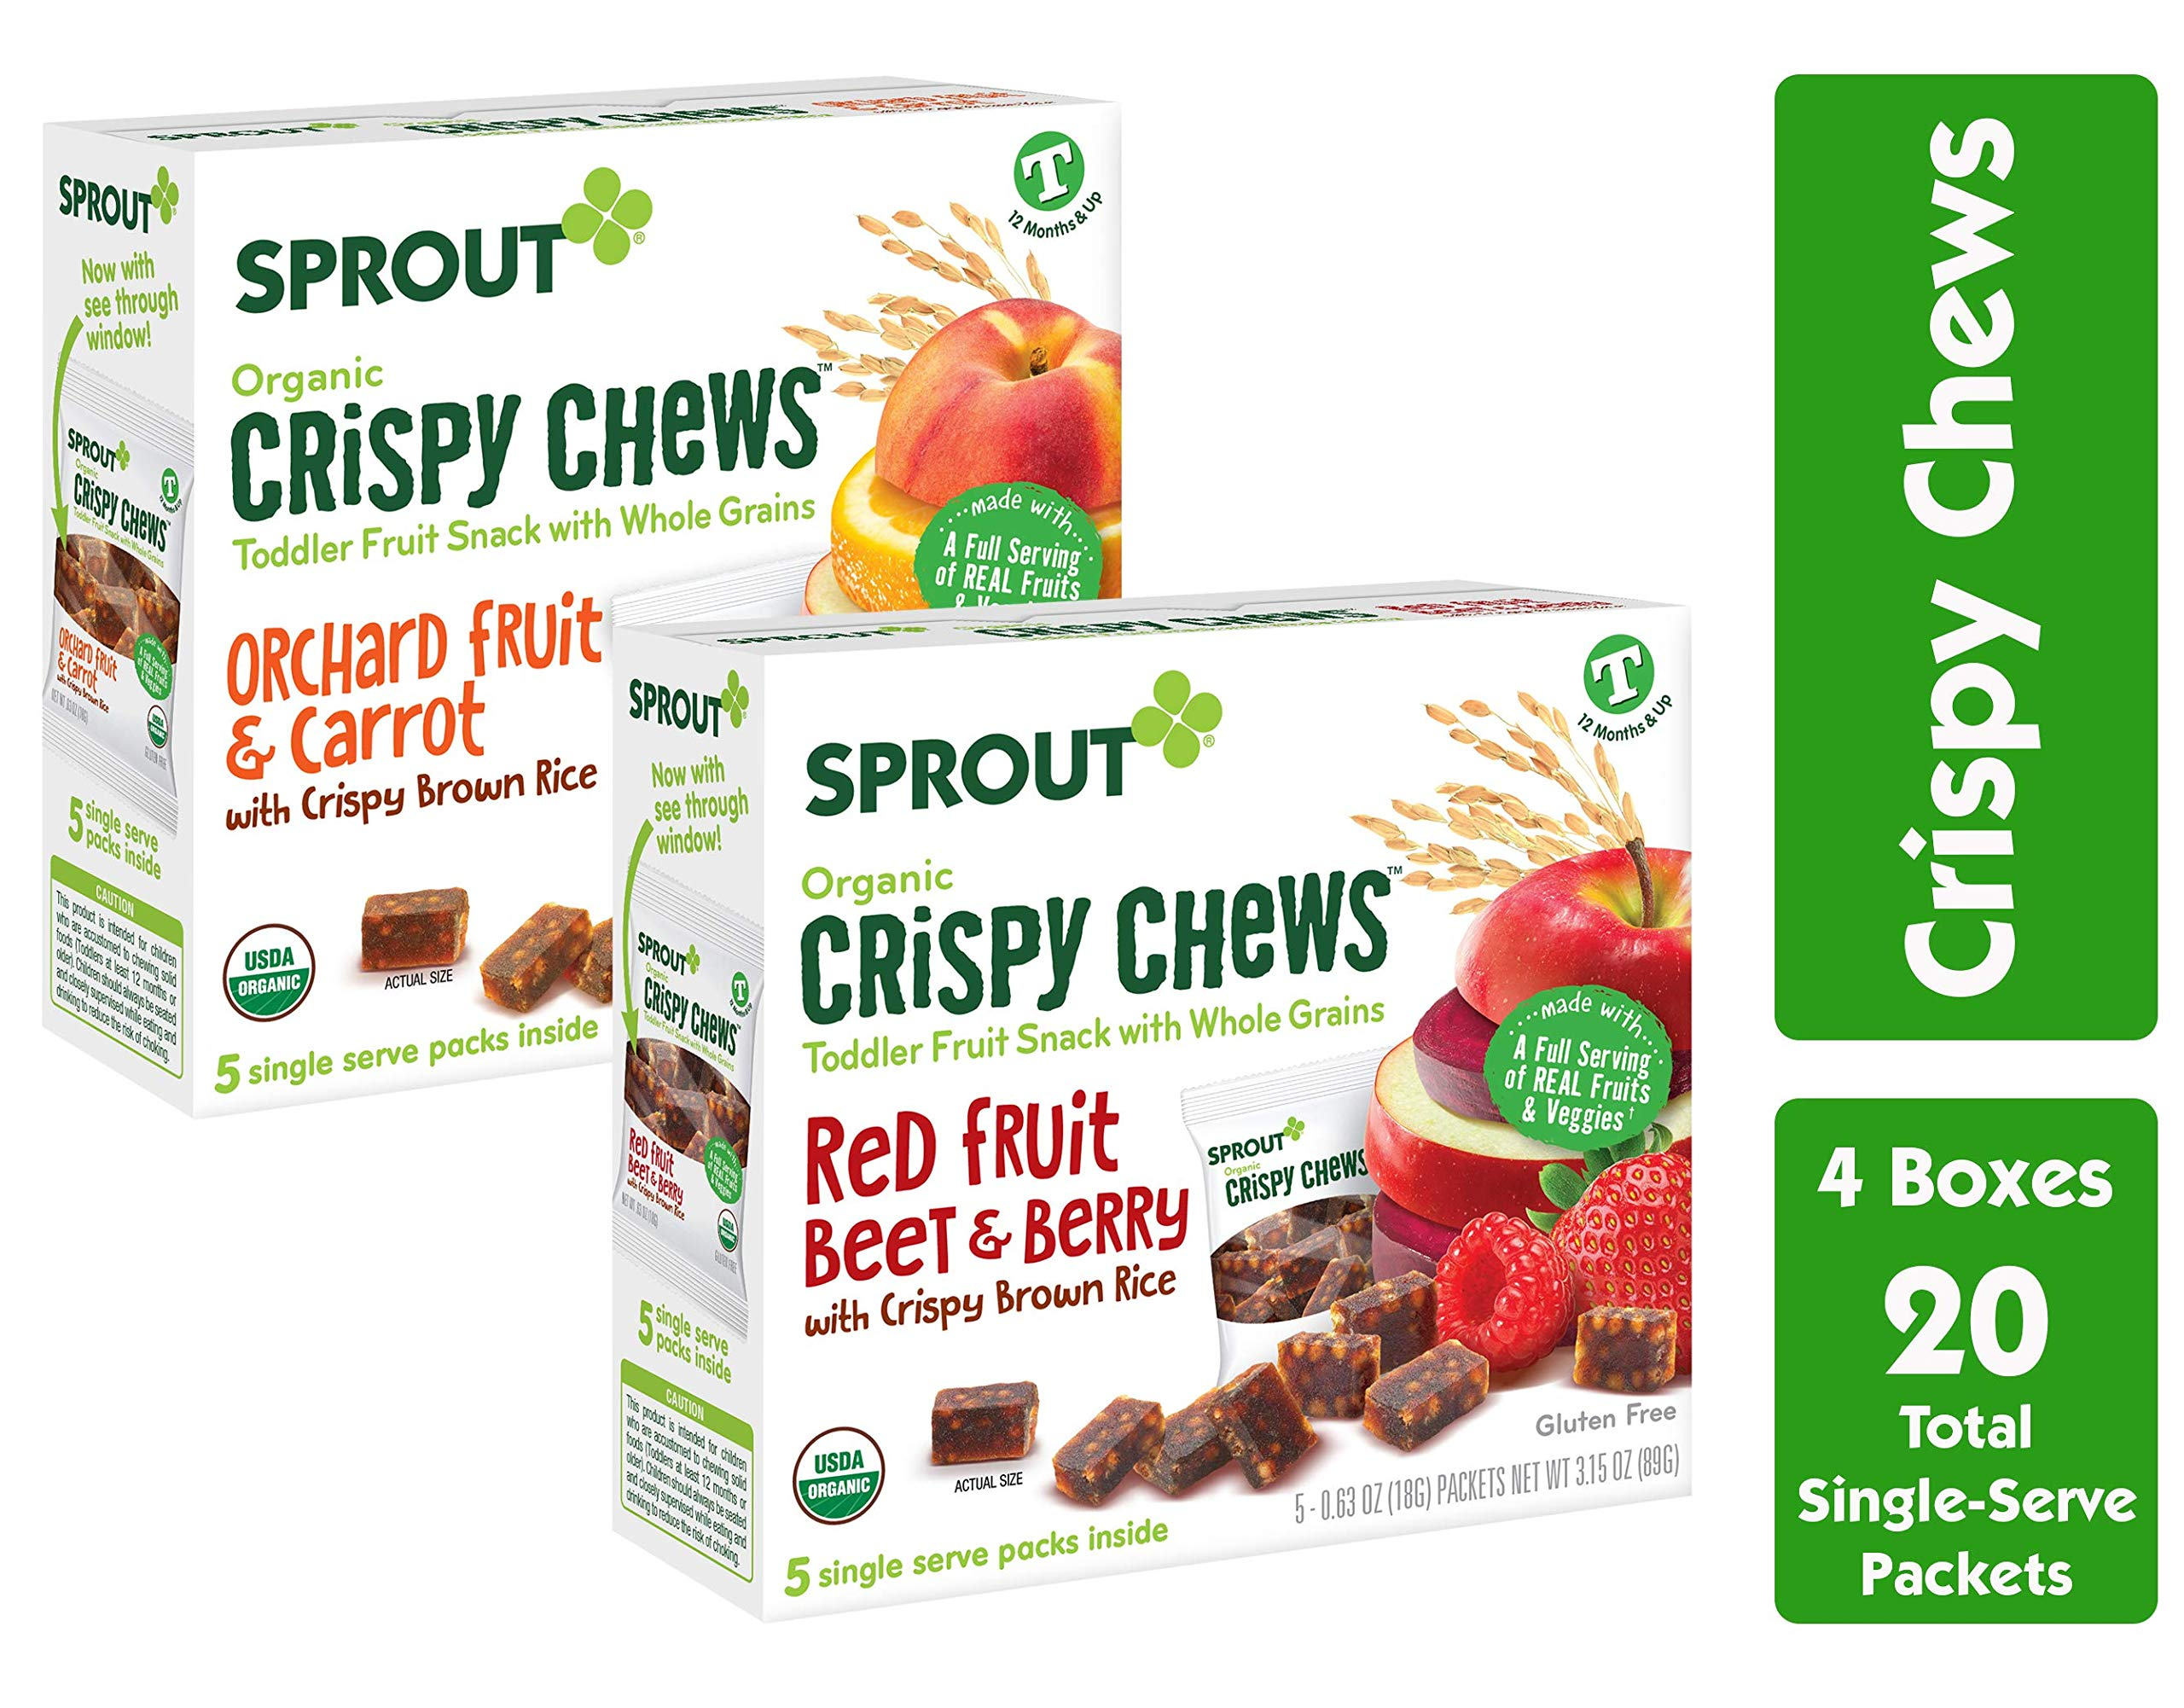 Sprout Organic Crispy Chews Toddler Snacks, Variety Pack, 5 Count Box of 0.63 Ounce Single Serve Packets (Pack of 4) 2 Boxes Each: Red Fruit Berry & Beet and Orchard Fruit & Carrot by Sprout